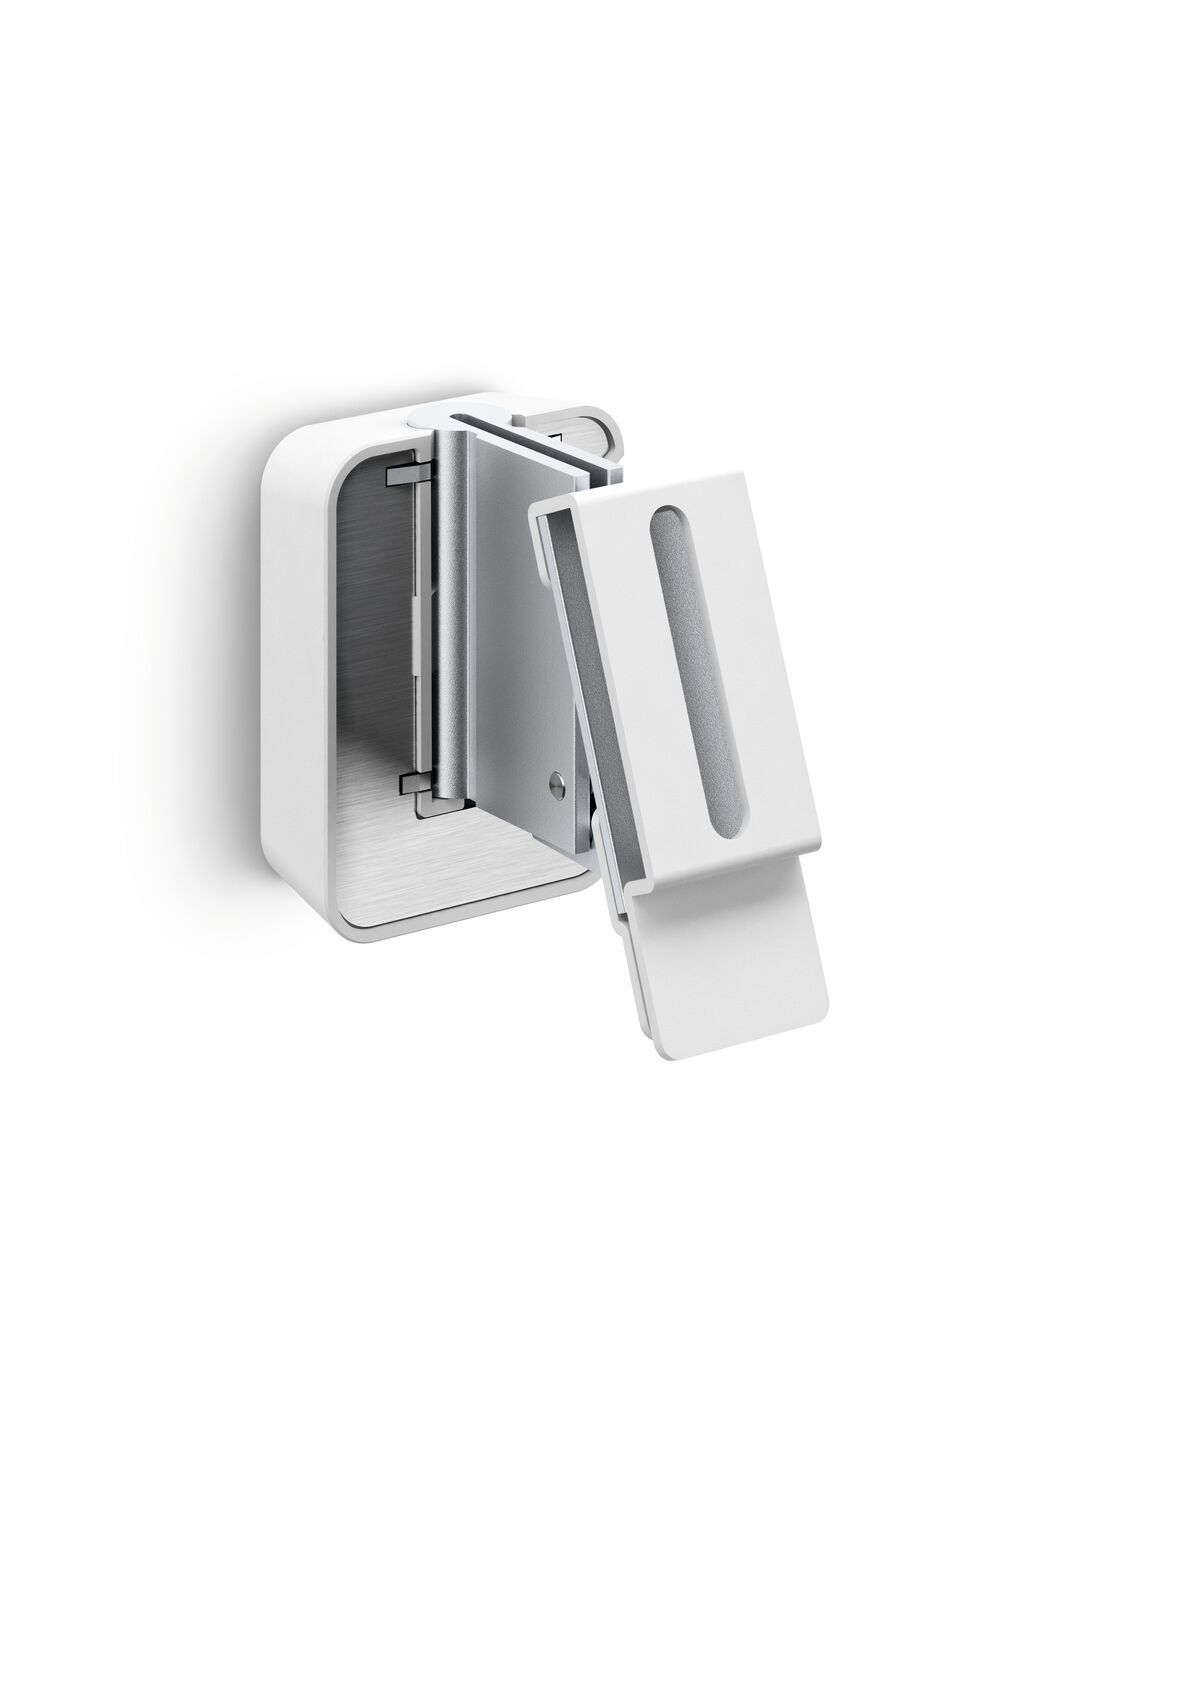 Vogel's SOUND 3200 Speaker Wall Mount (white) - Ideally suited for: Universal - Max. weight load: 5 kg - Product